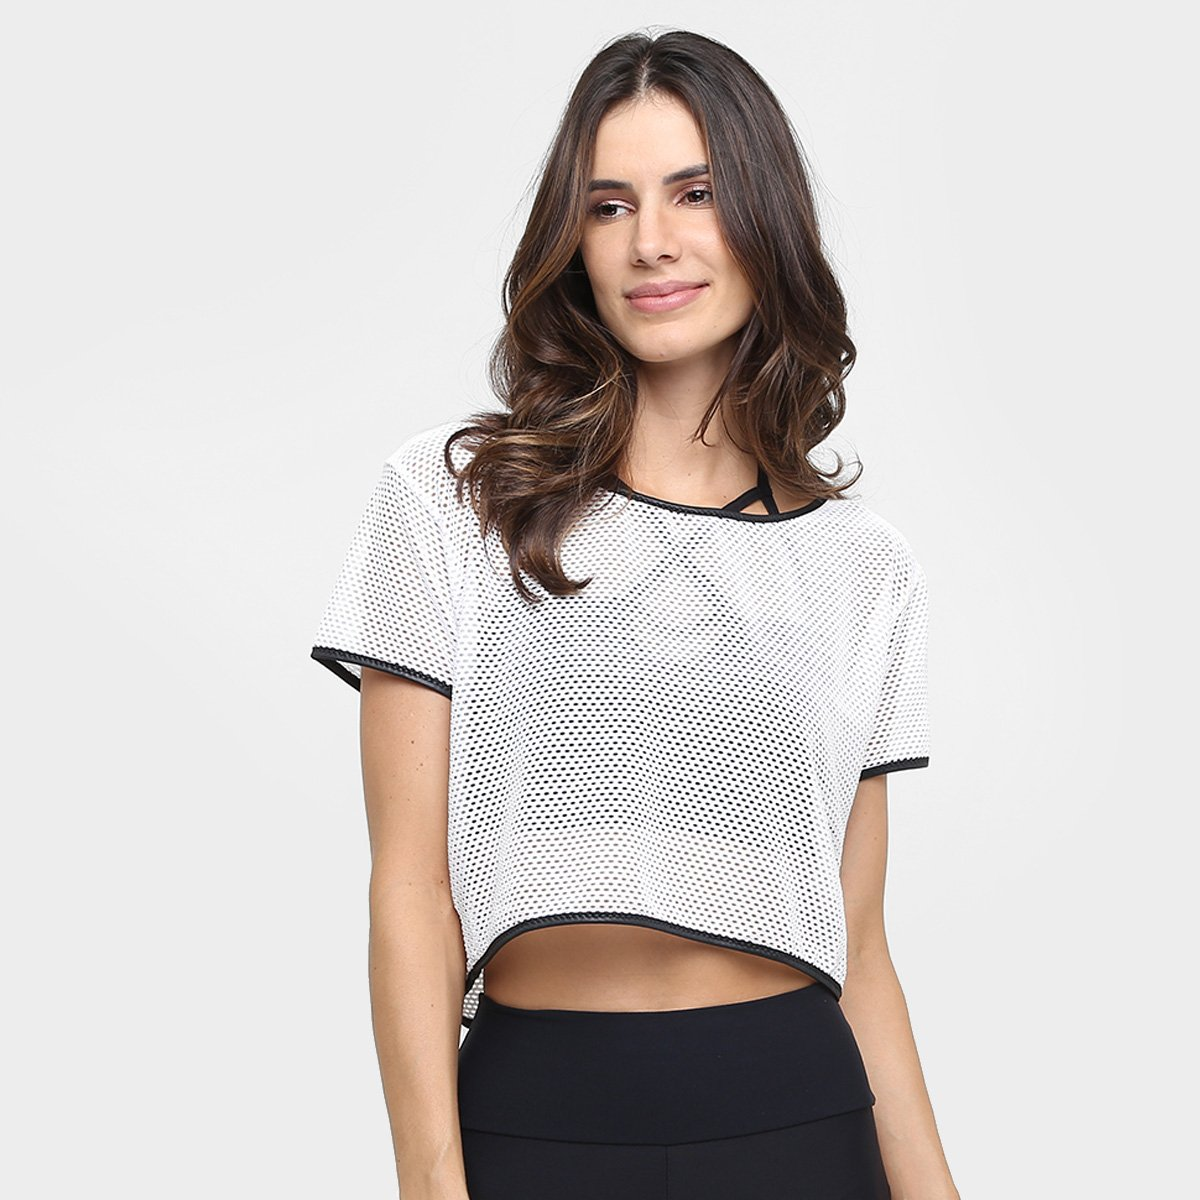 Cropped Enjoy Live Caruaru Live Caruaru Cropped Feminino Enjoy Branco ww5xqrZdU